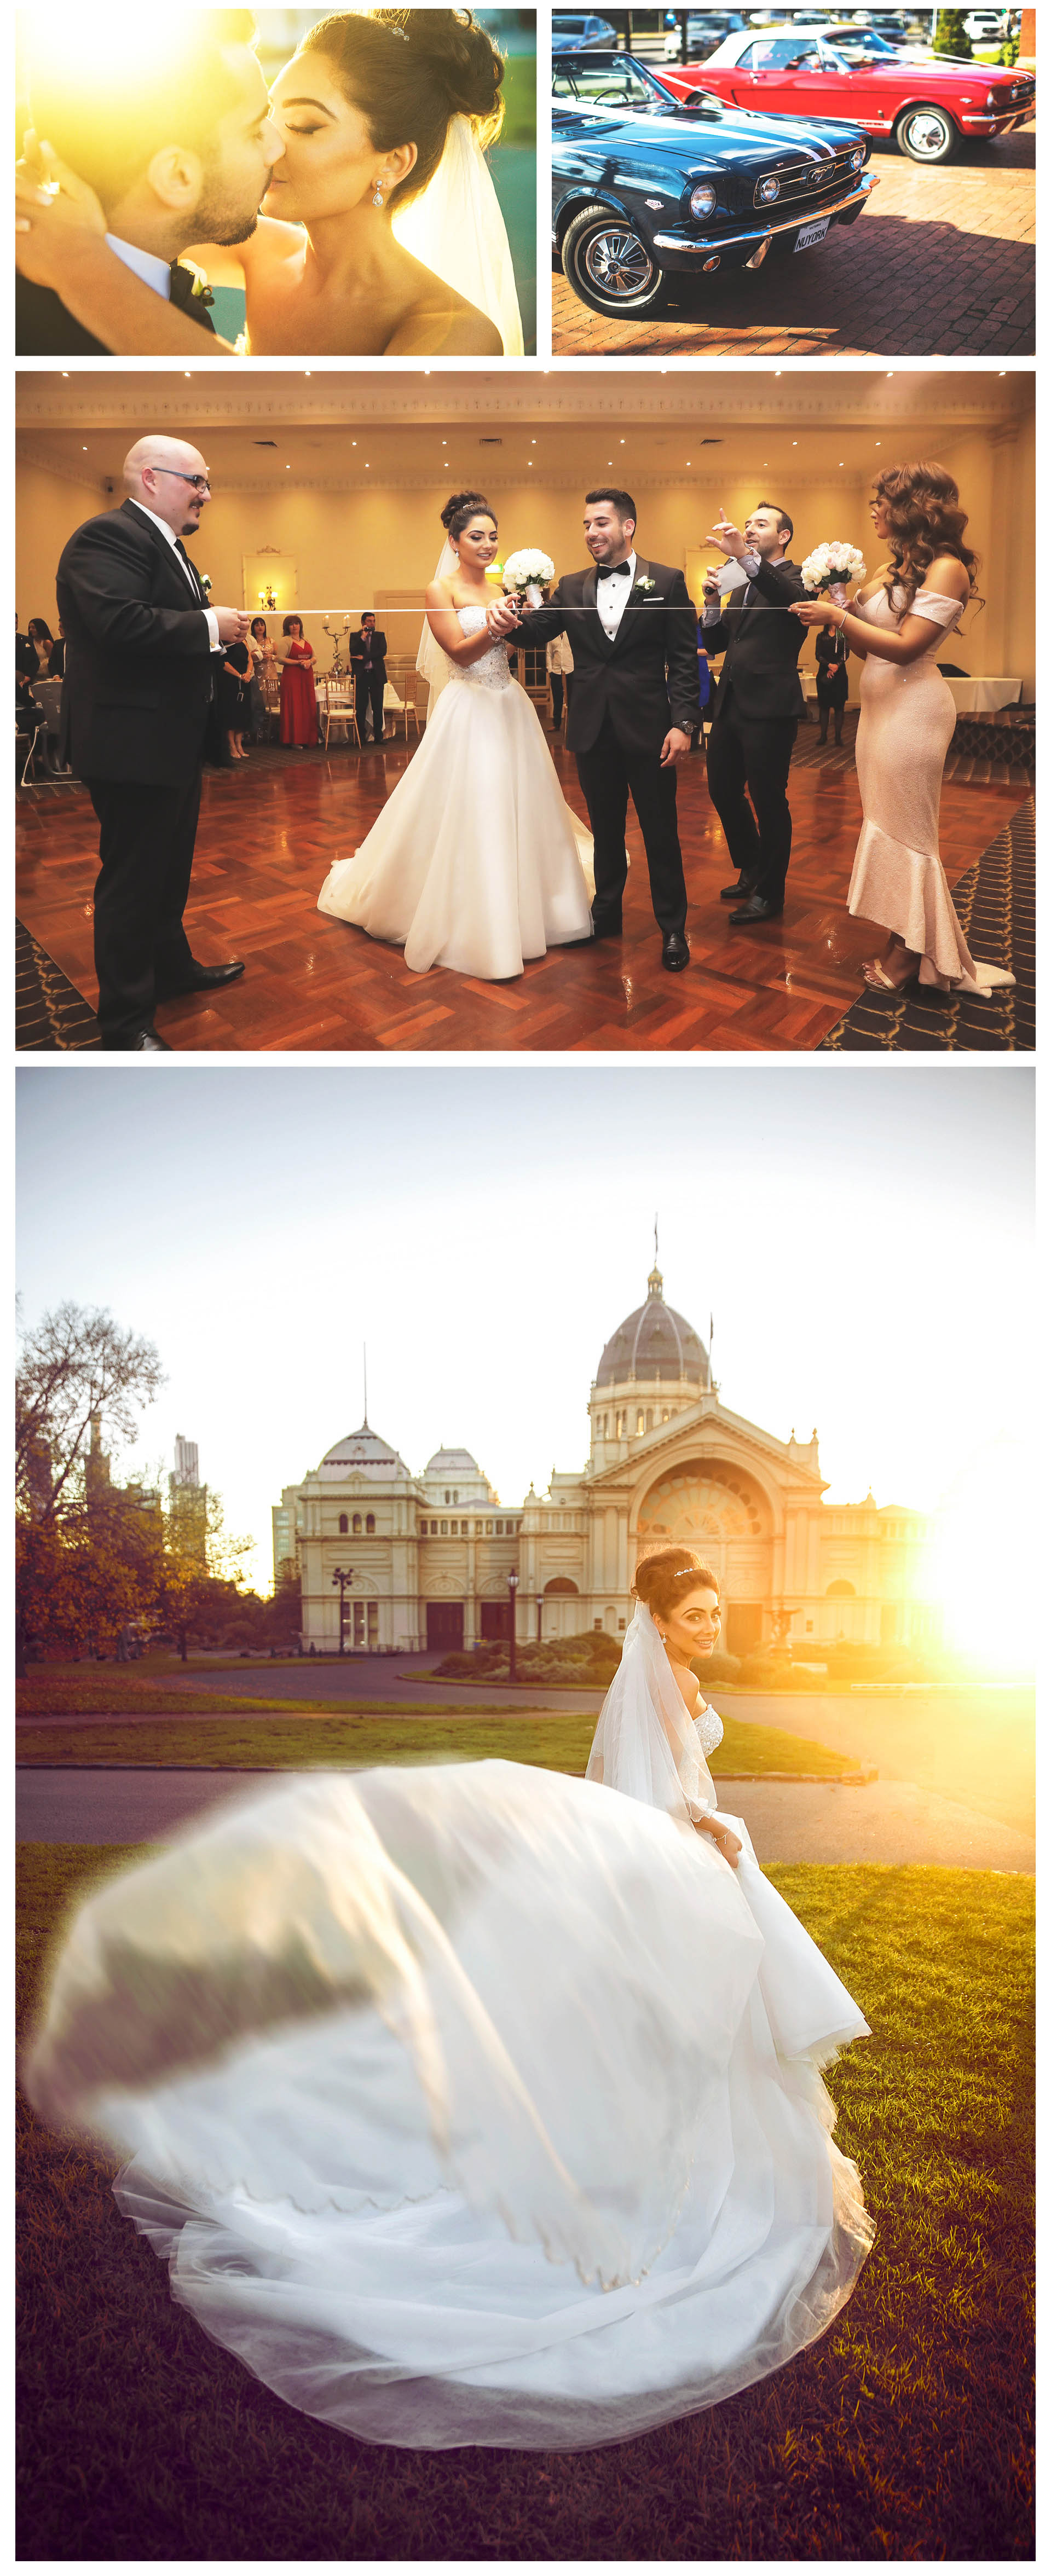 The bride took a sunset photo at the gate of the royal exhibition building